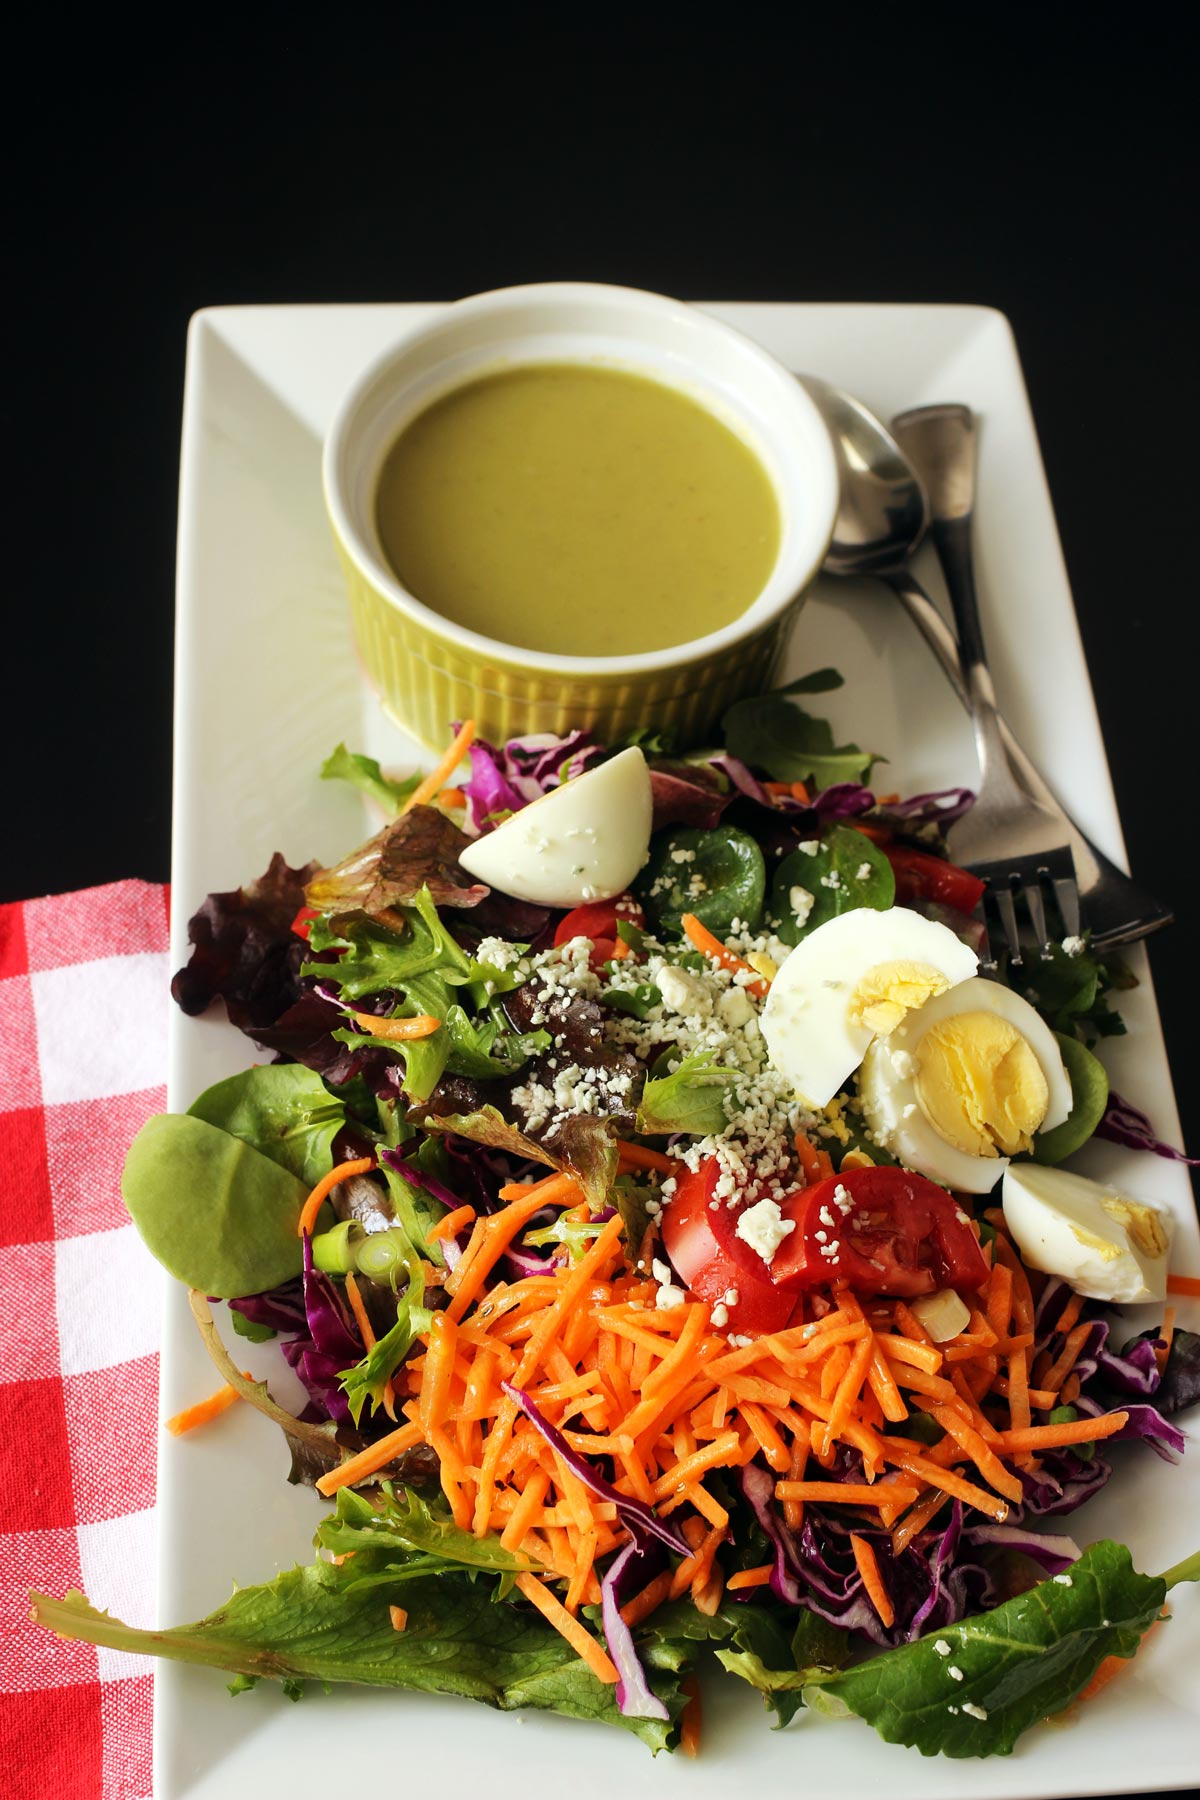 cup of asparagus soup on salad platter